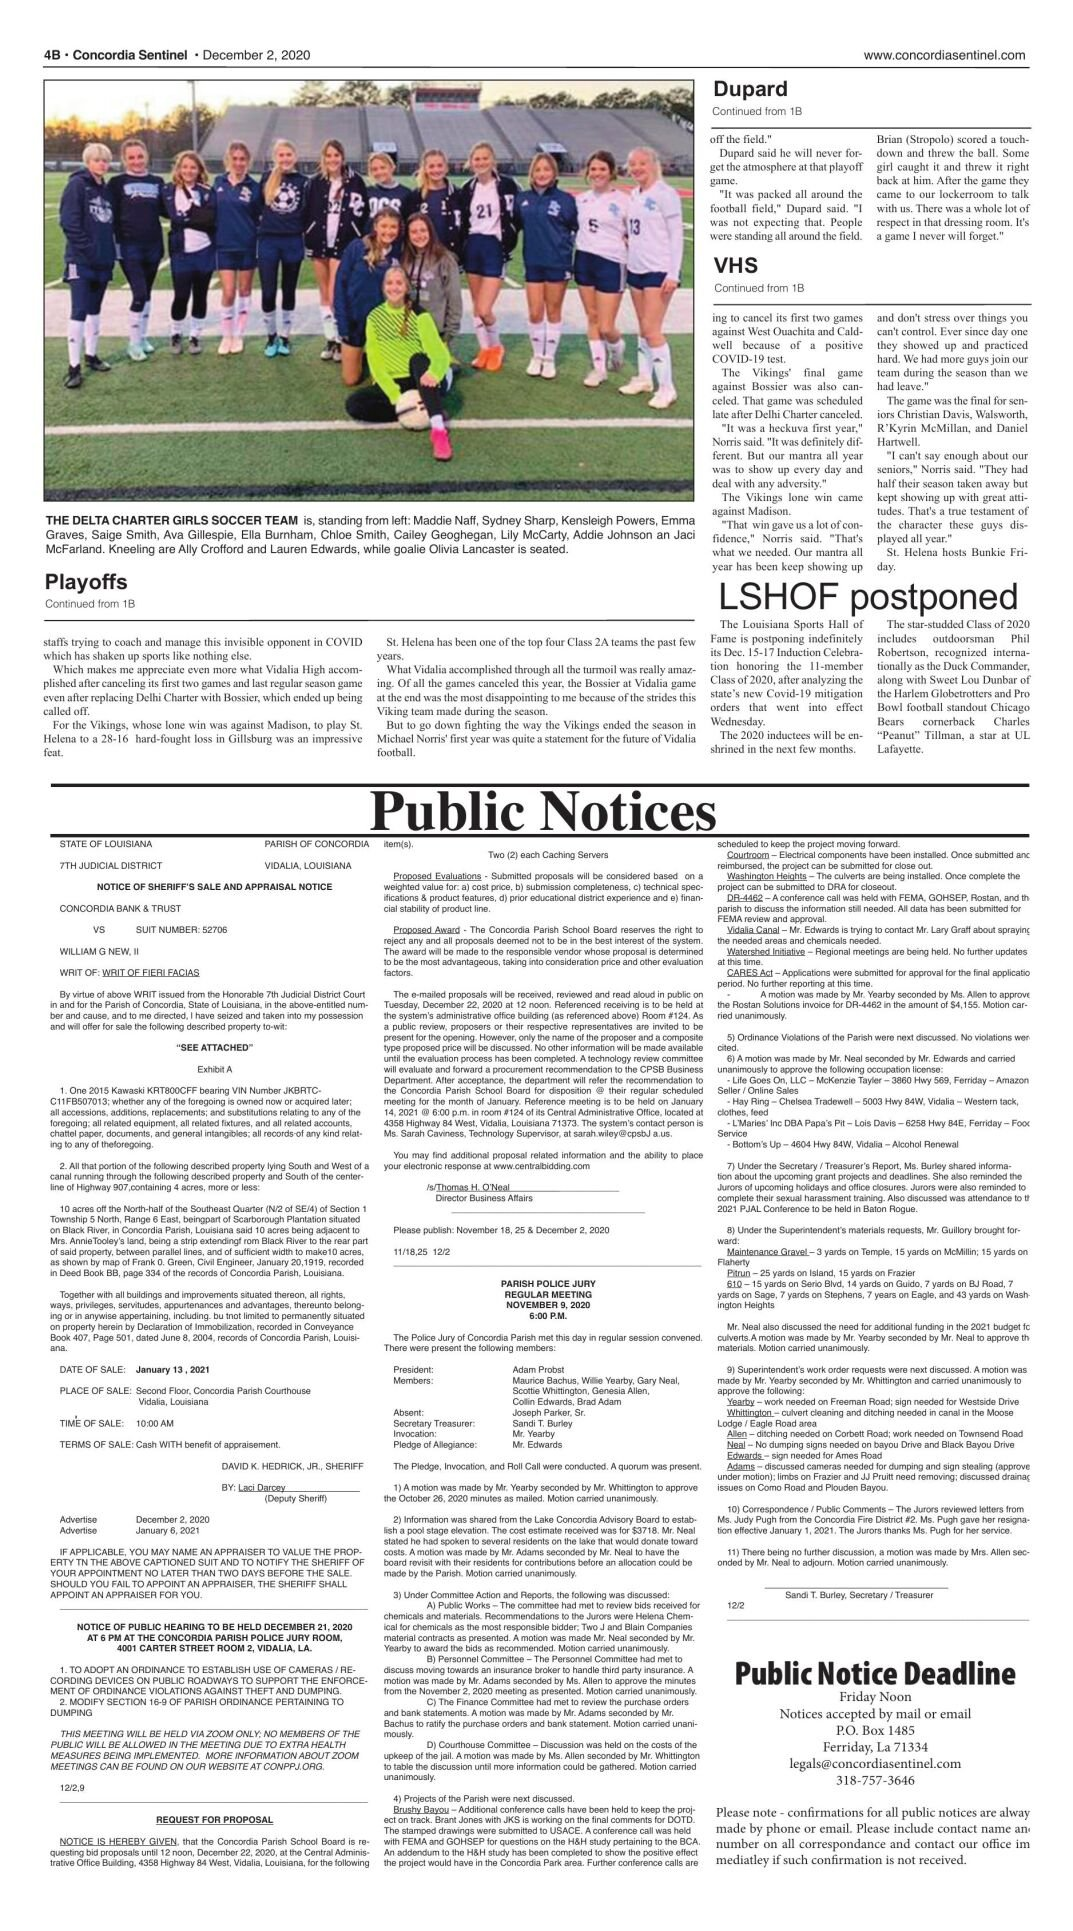 Public Notices - Dec. 2, 2020